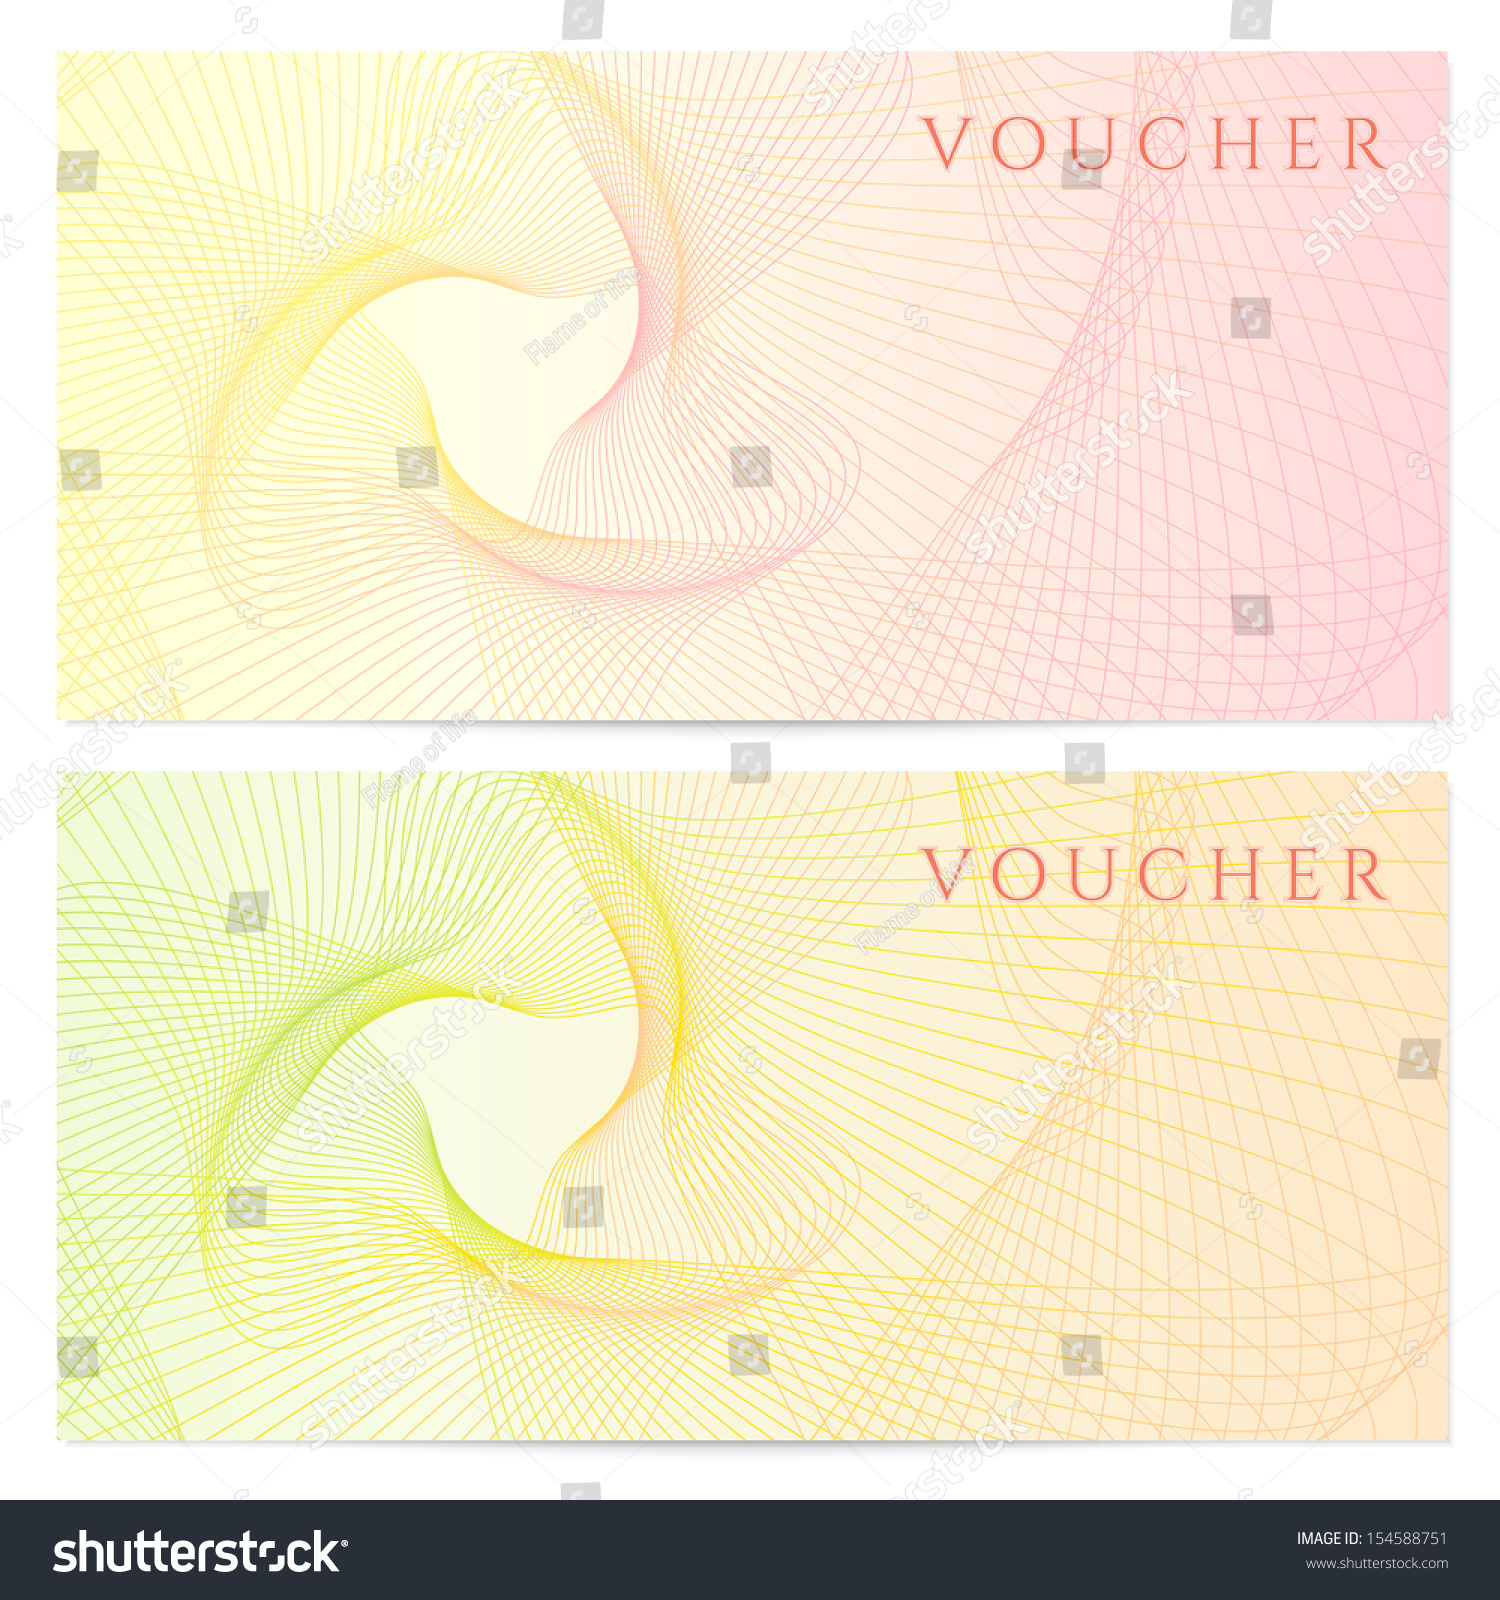 Voucher gift certificate coupon template colorful stock for Cheque voucher template